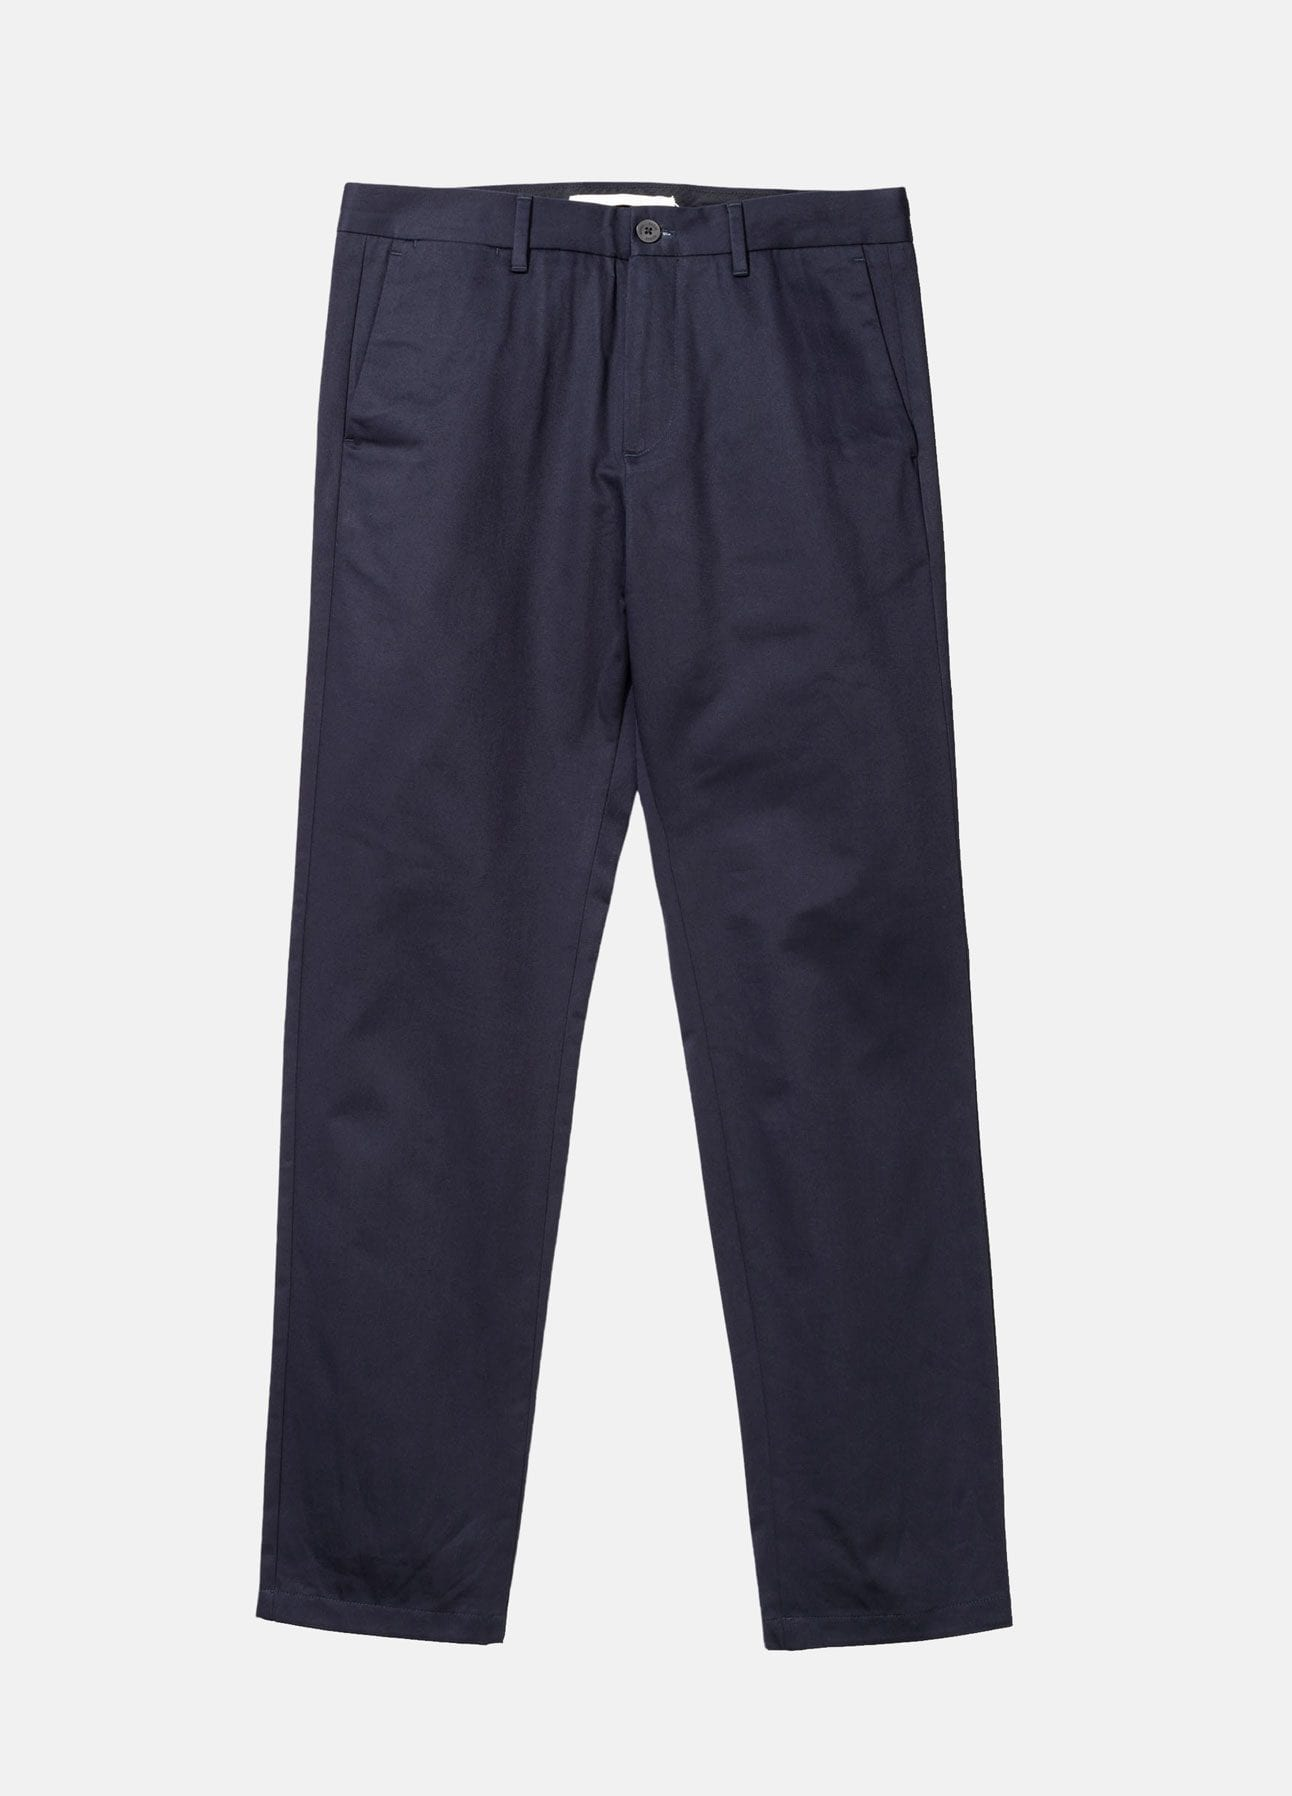 norse-projects_bukser_albin-chino_n25-0307_7004-dark-navy_aw19